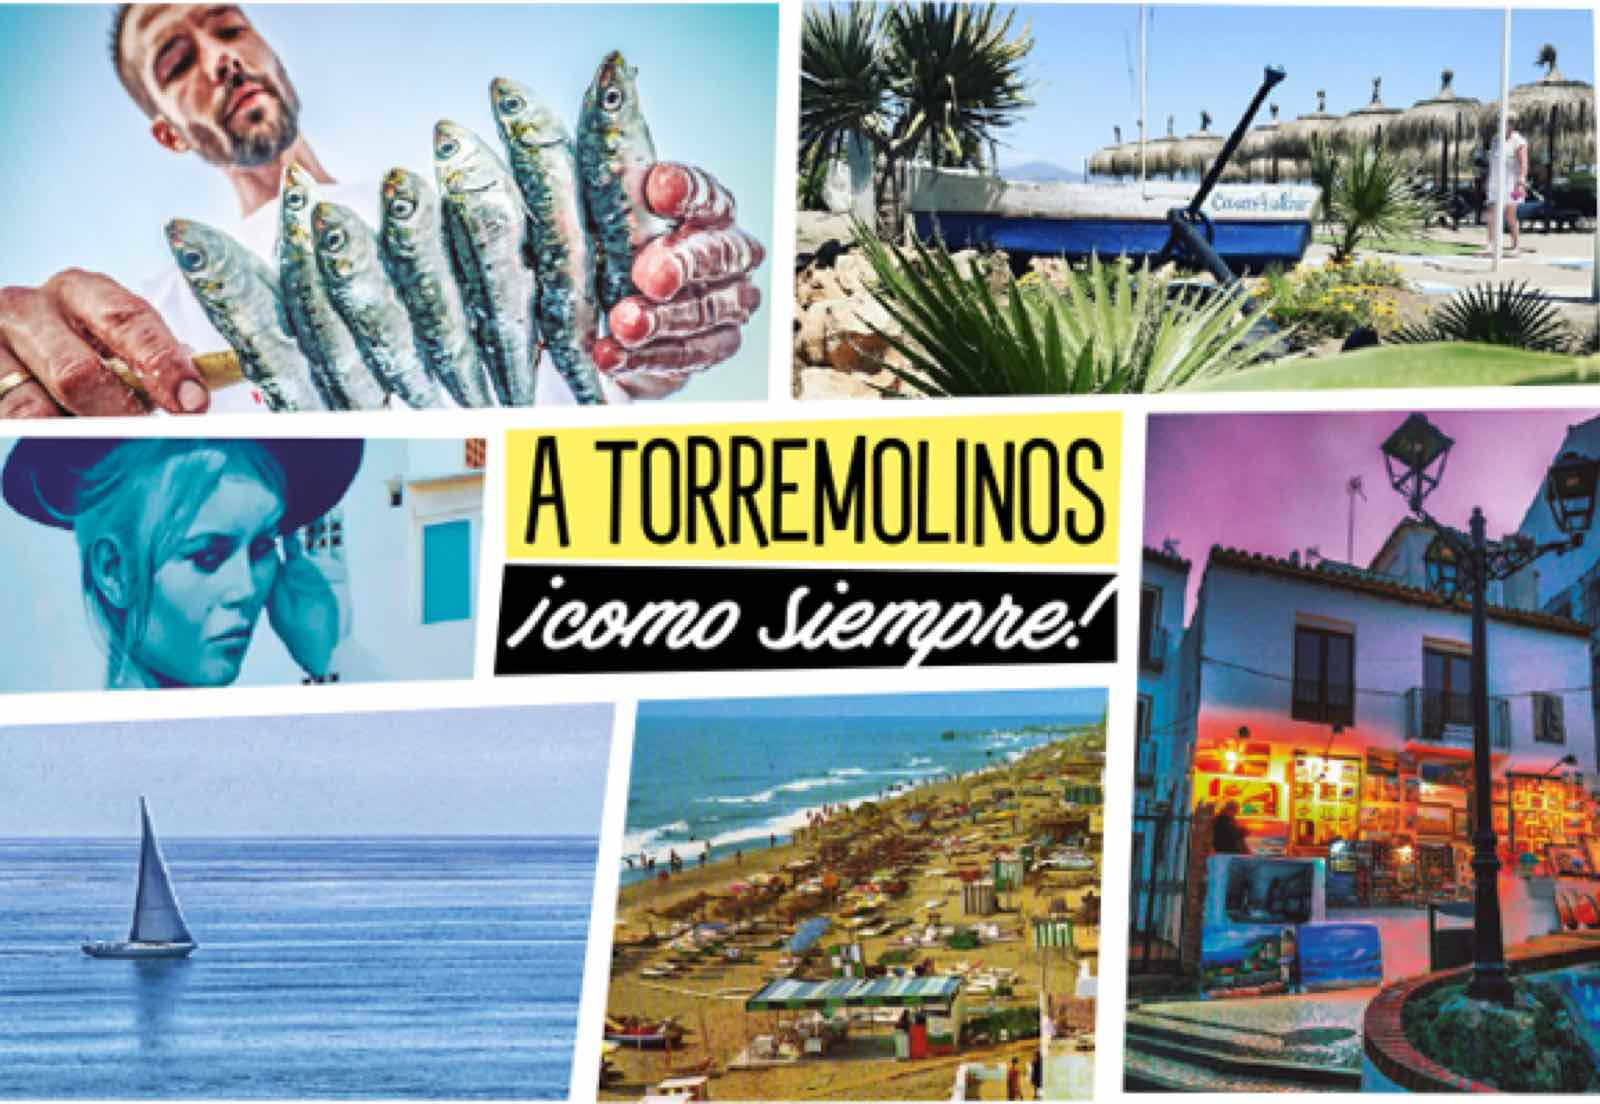 Postcard from Torremolinos, the resort with long history